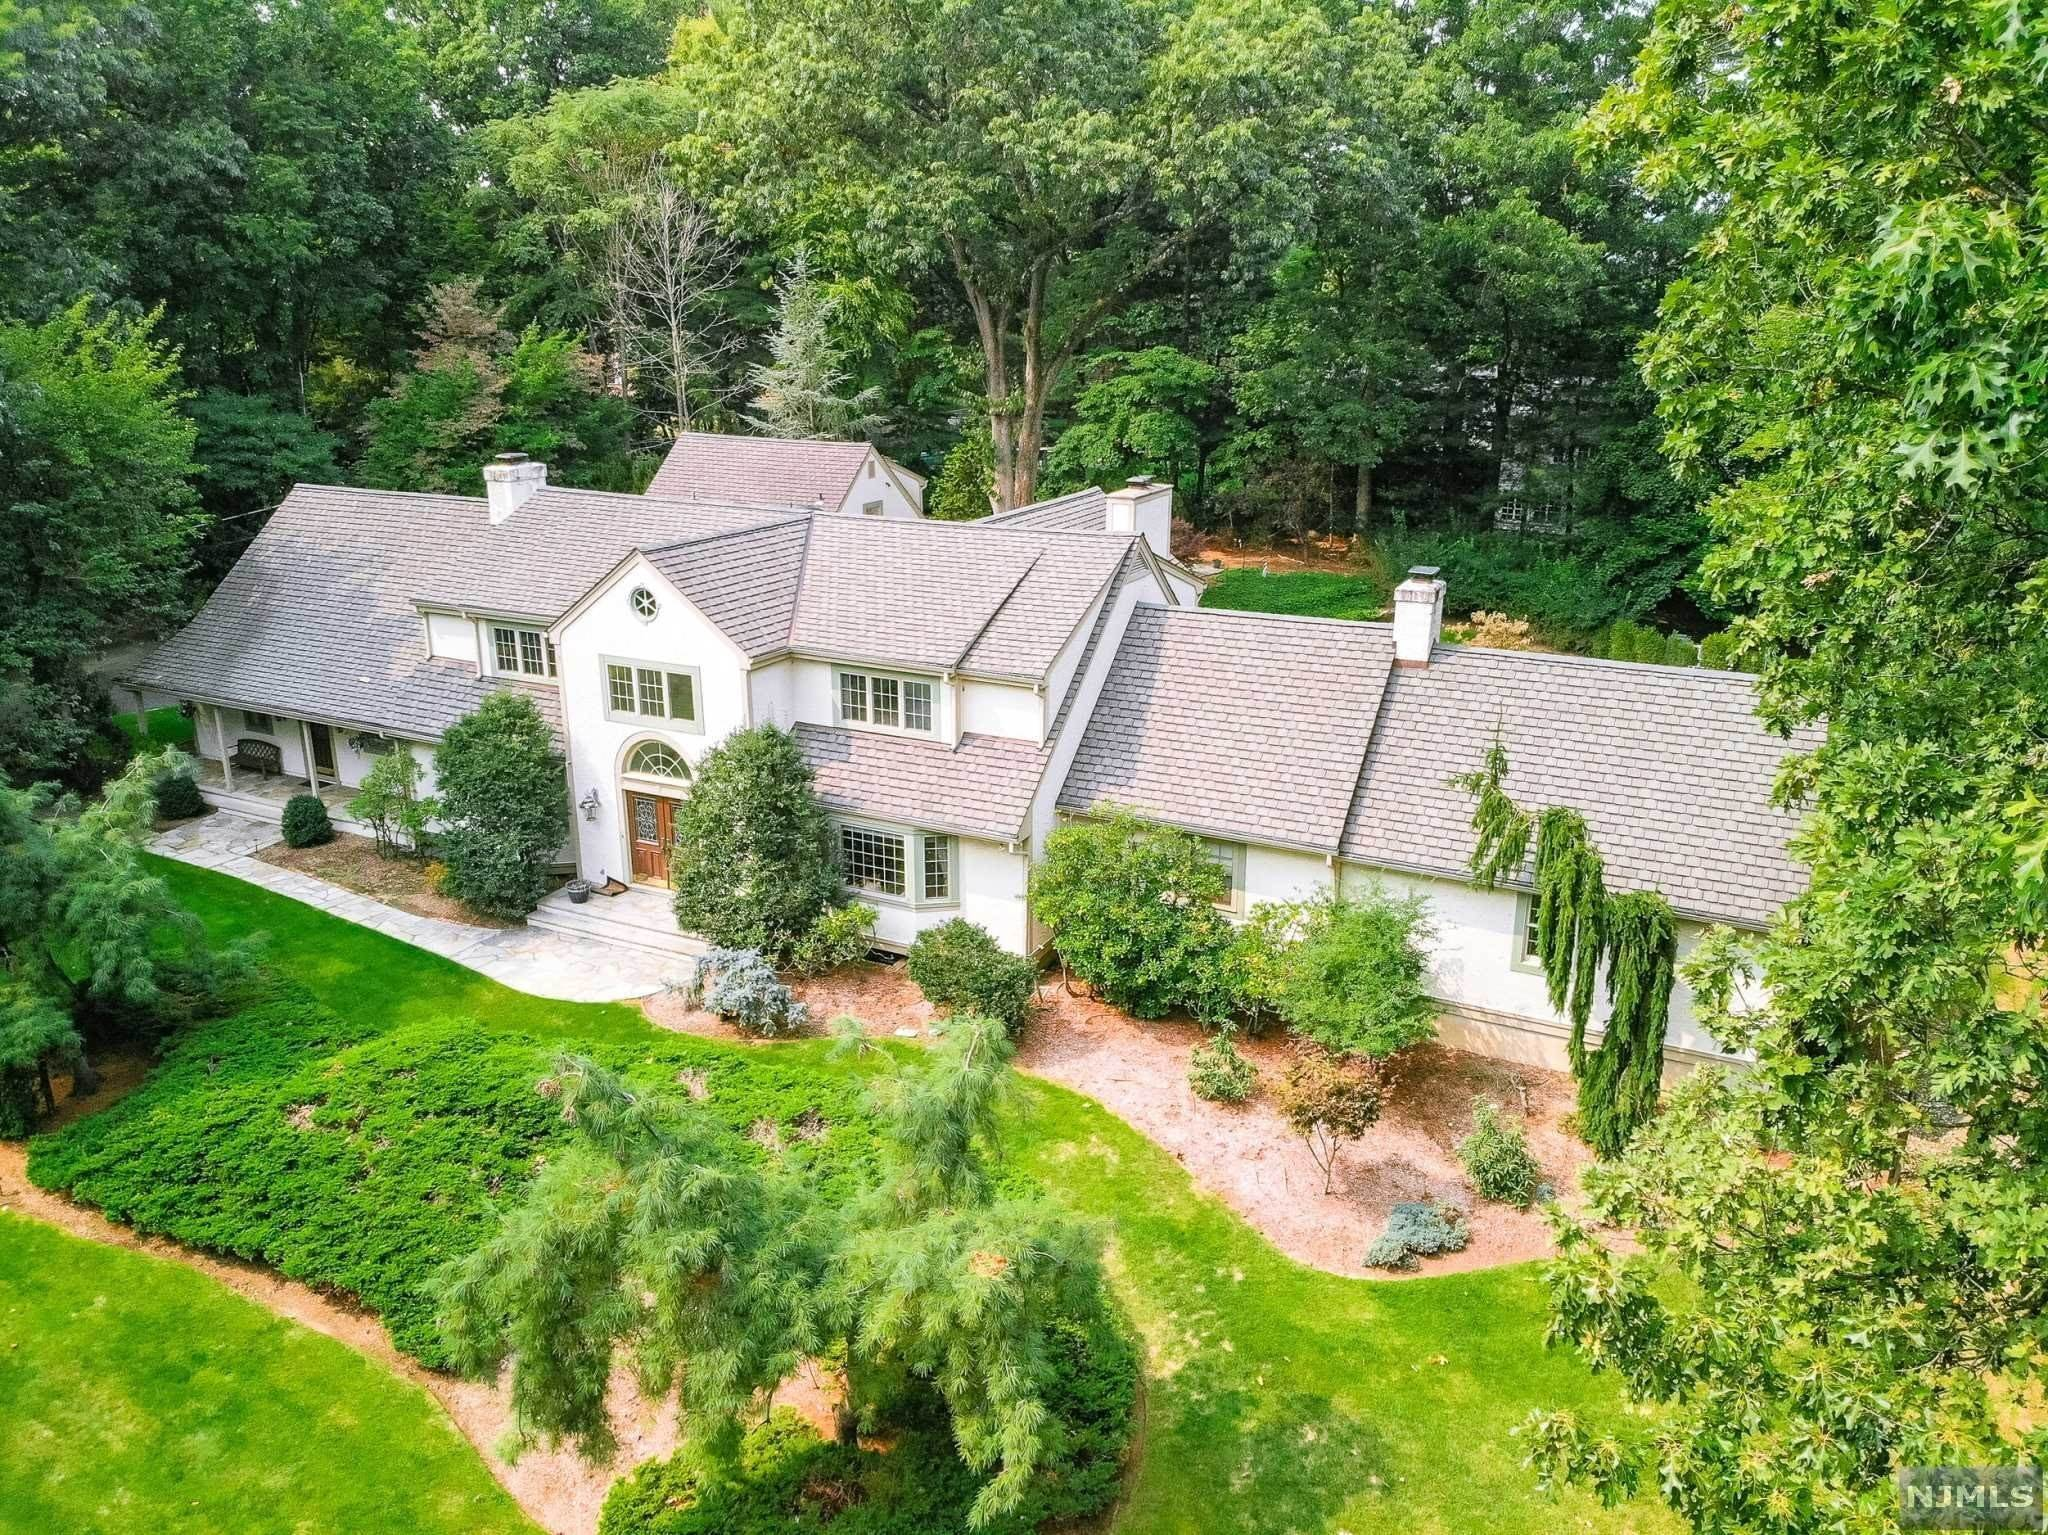 Single Family Home for Sale at 895 Mohawk Road Franklin Lakes, New Jersey, 07417 United States